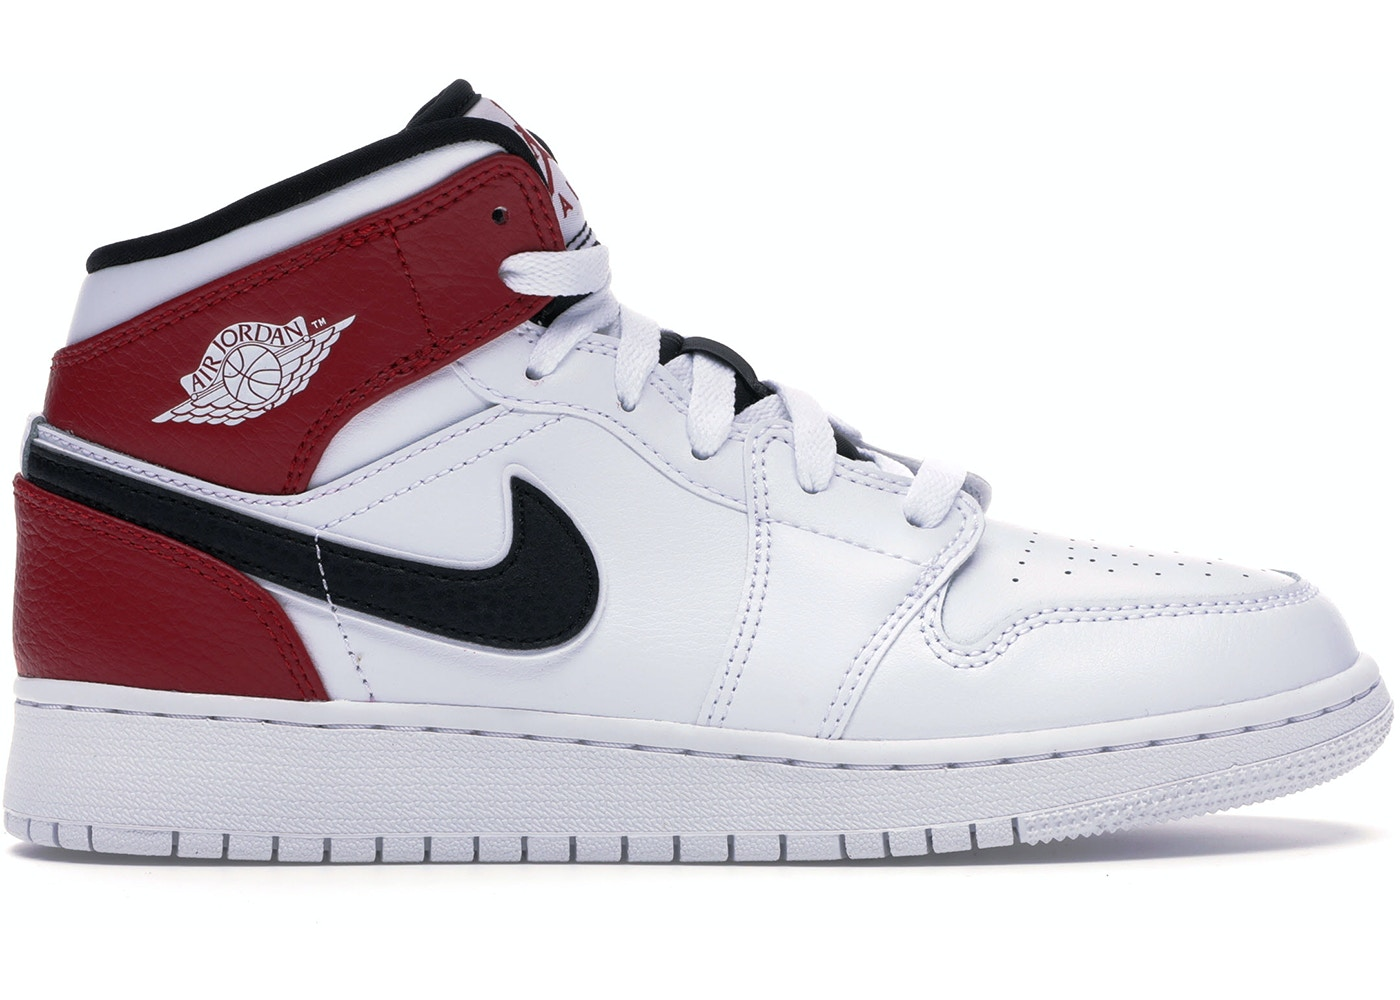 newest collection f2a6d f1639 Jordan 1 Mid White Black Gym Red (GS) - 554725-116